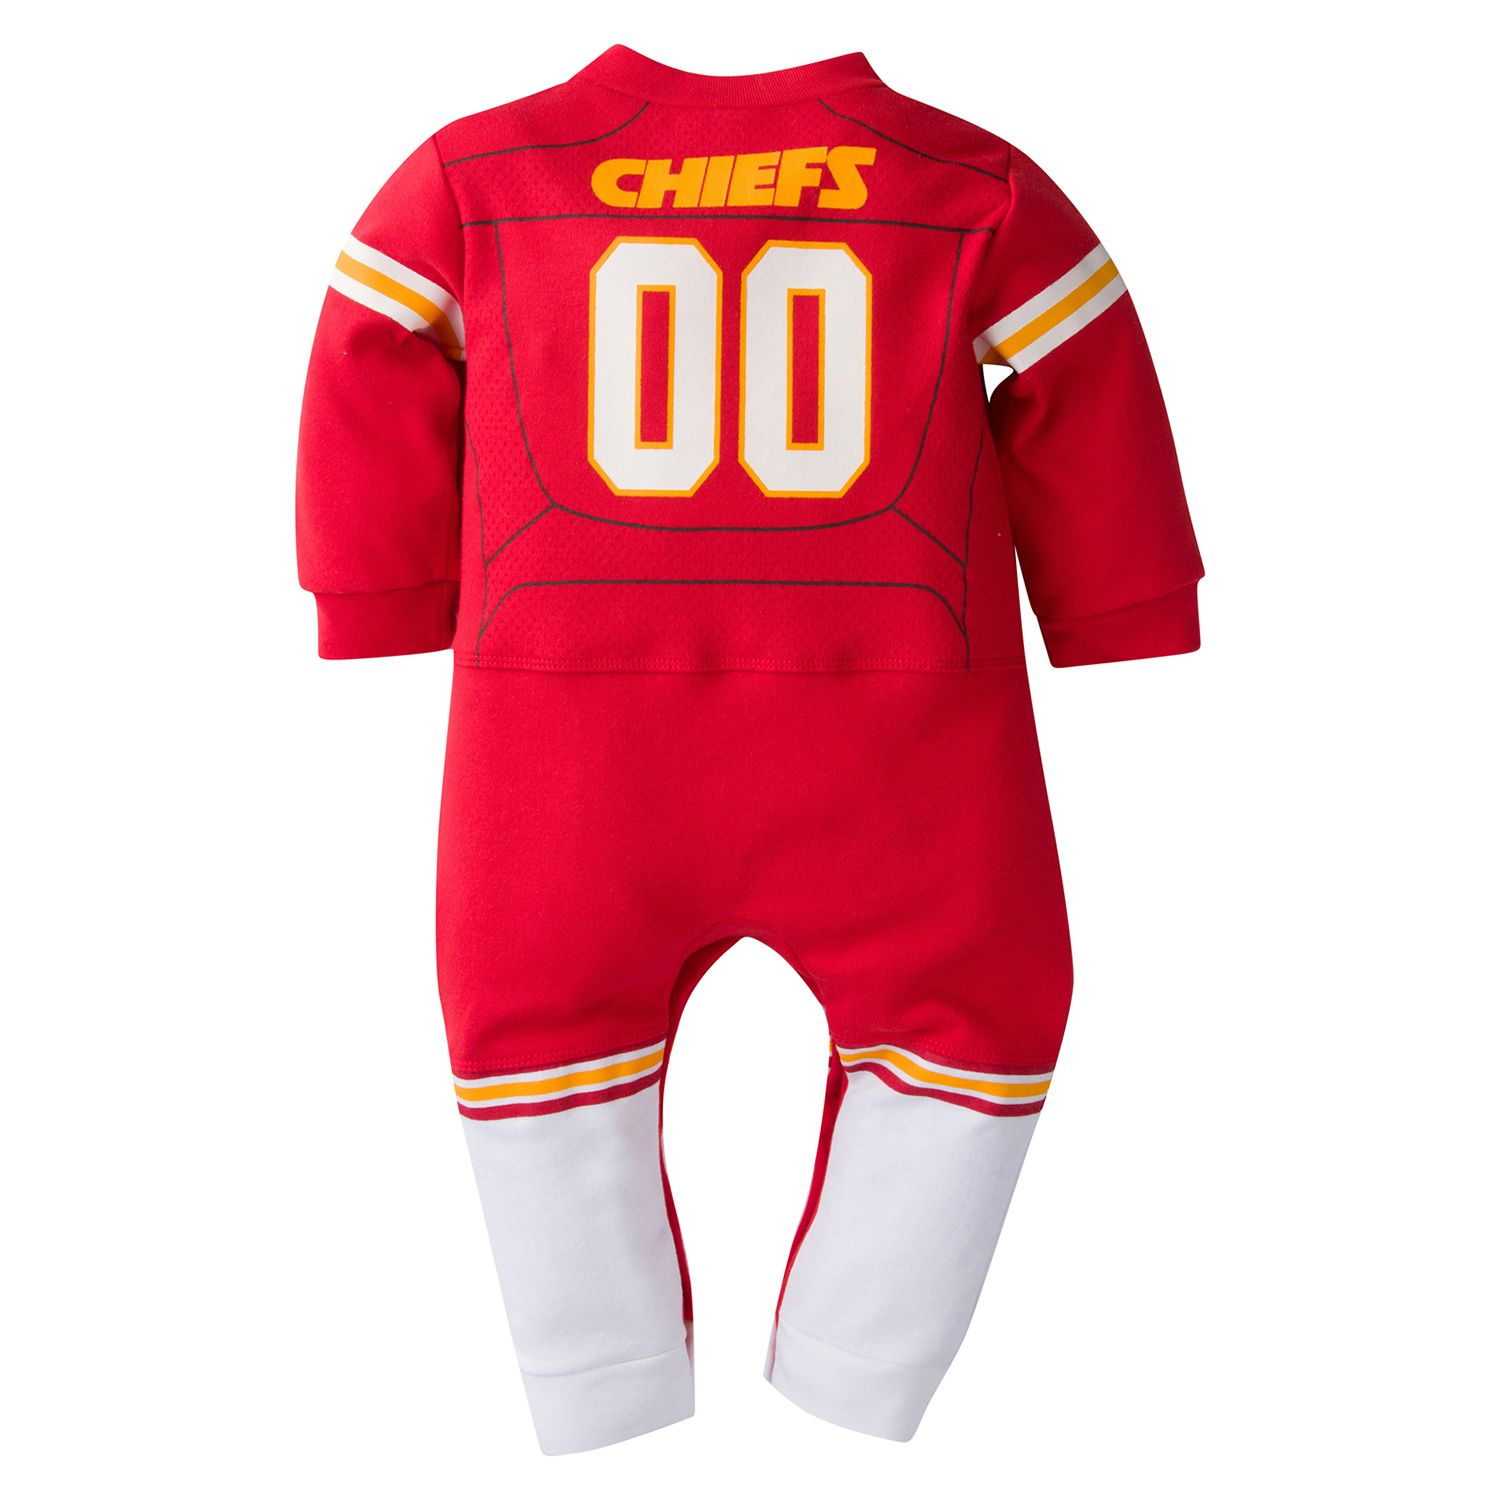 Boys Coveralls Baby ePiece Outfits ePiece Clothing